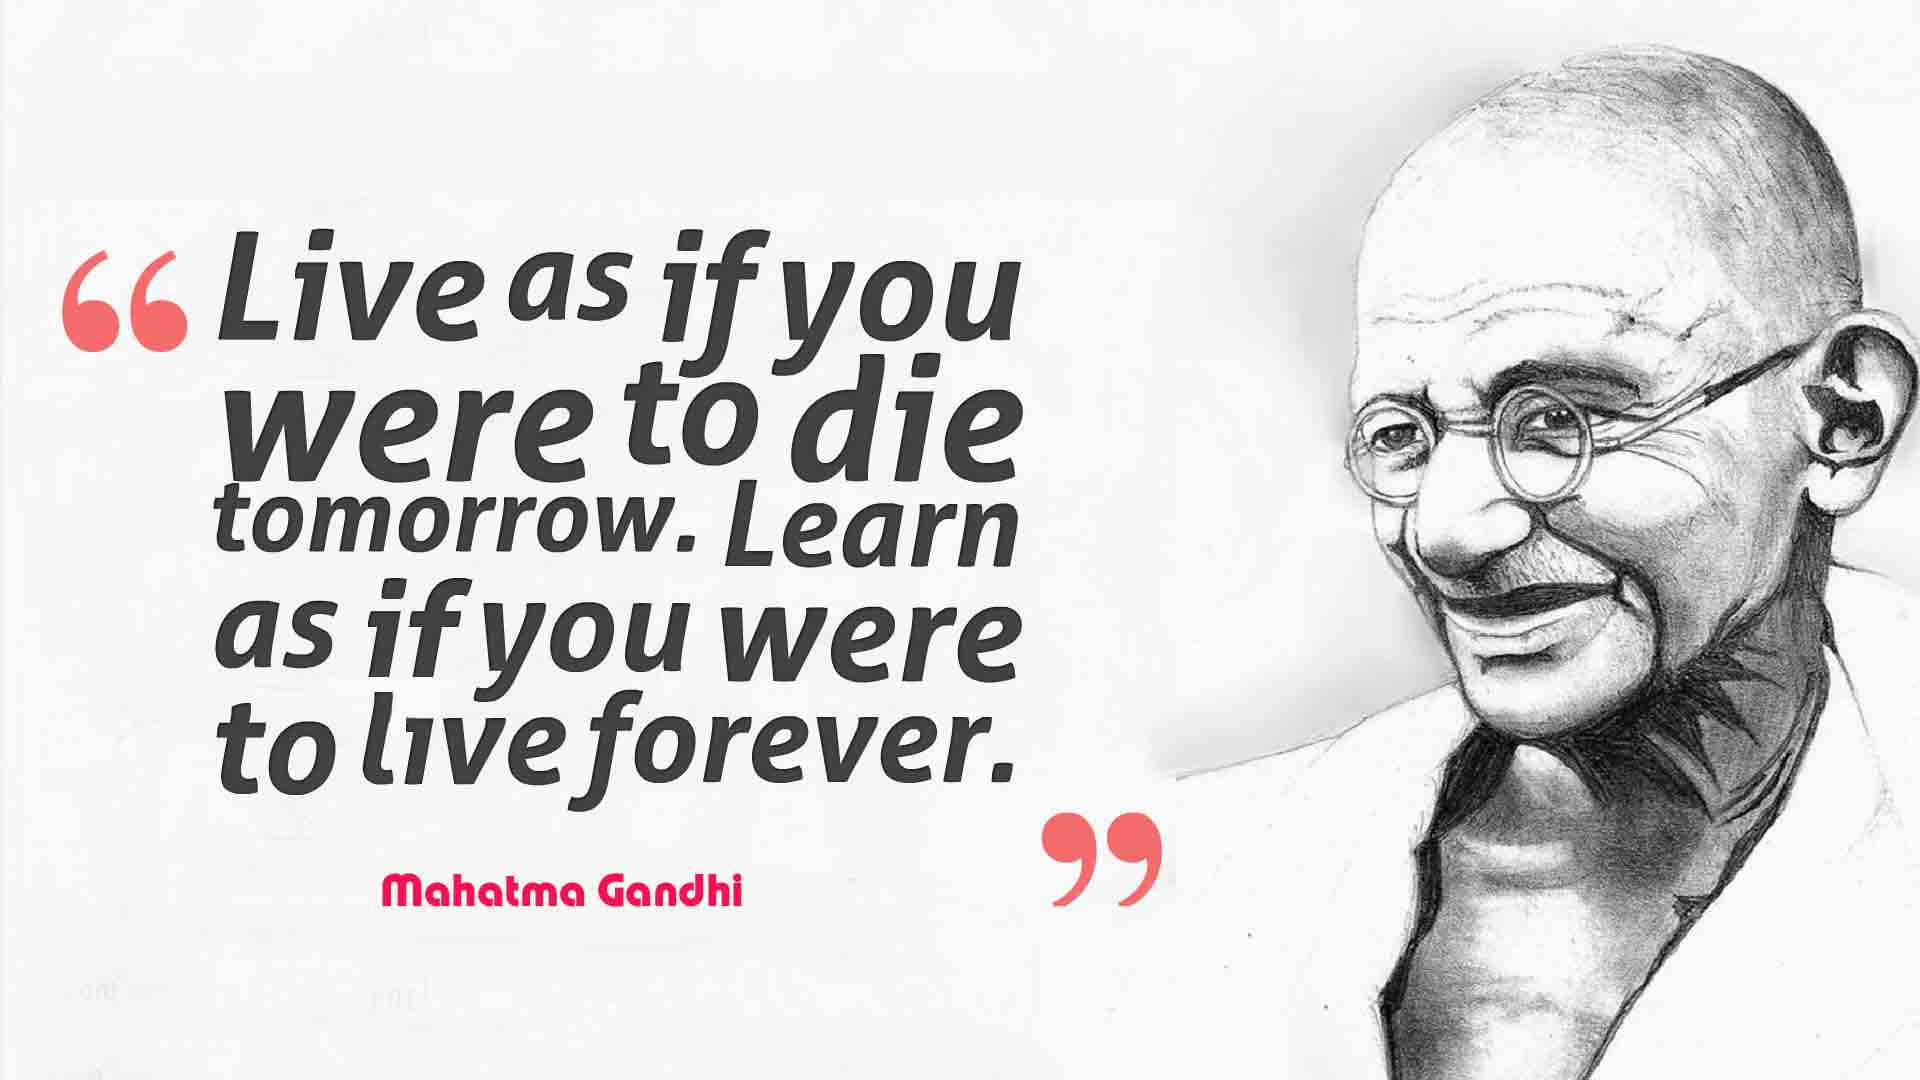 quatation on gandhi jayanti